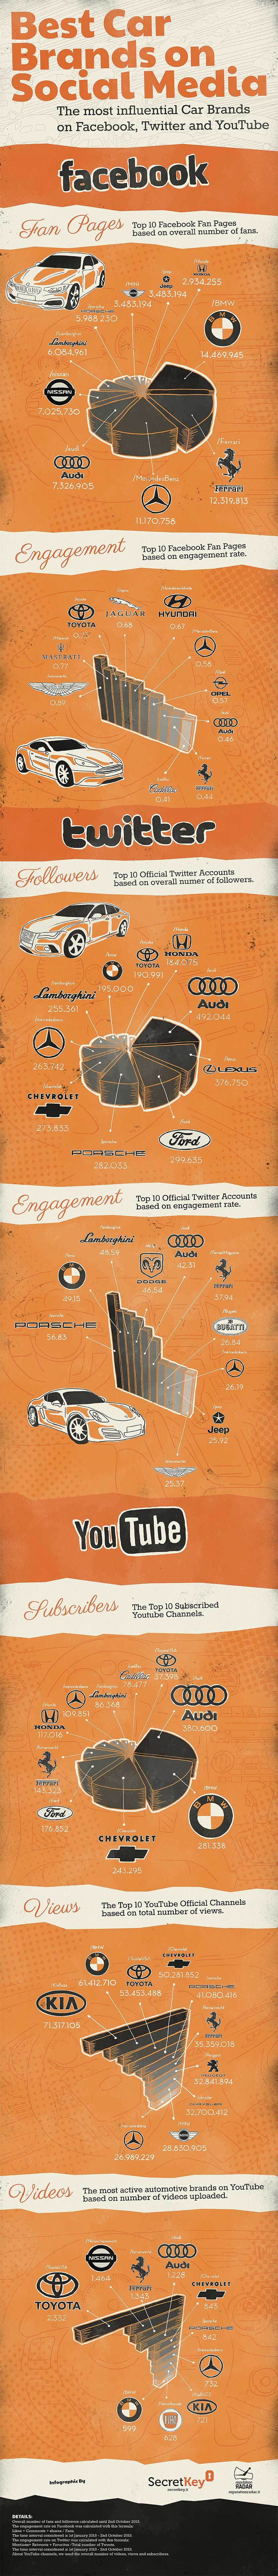 best-car-brands-on-social-media_5264eb64074b0